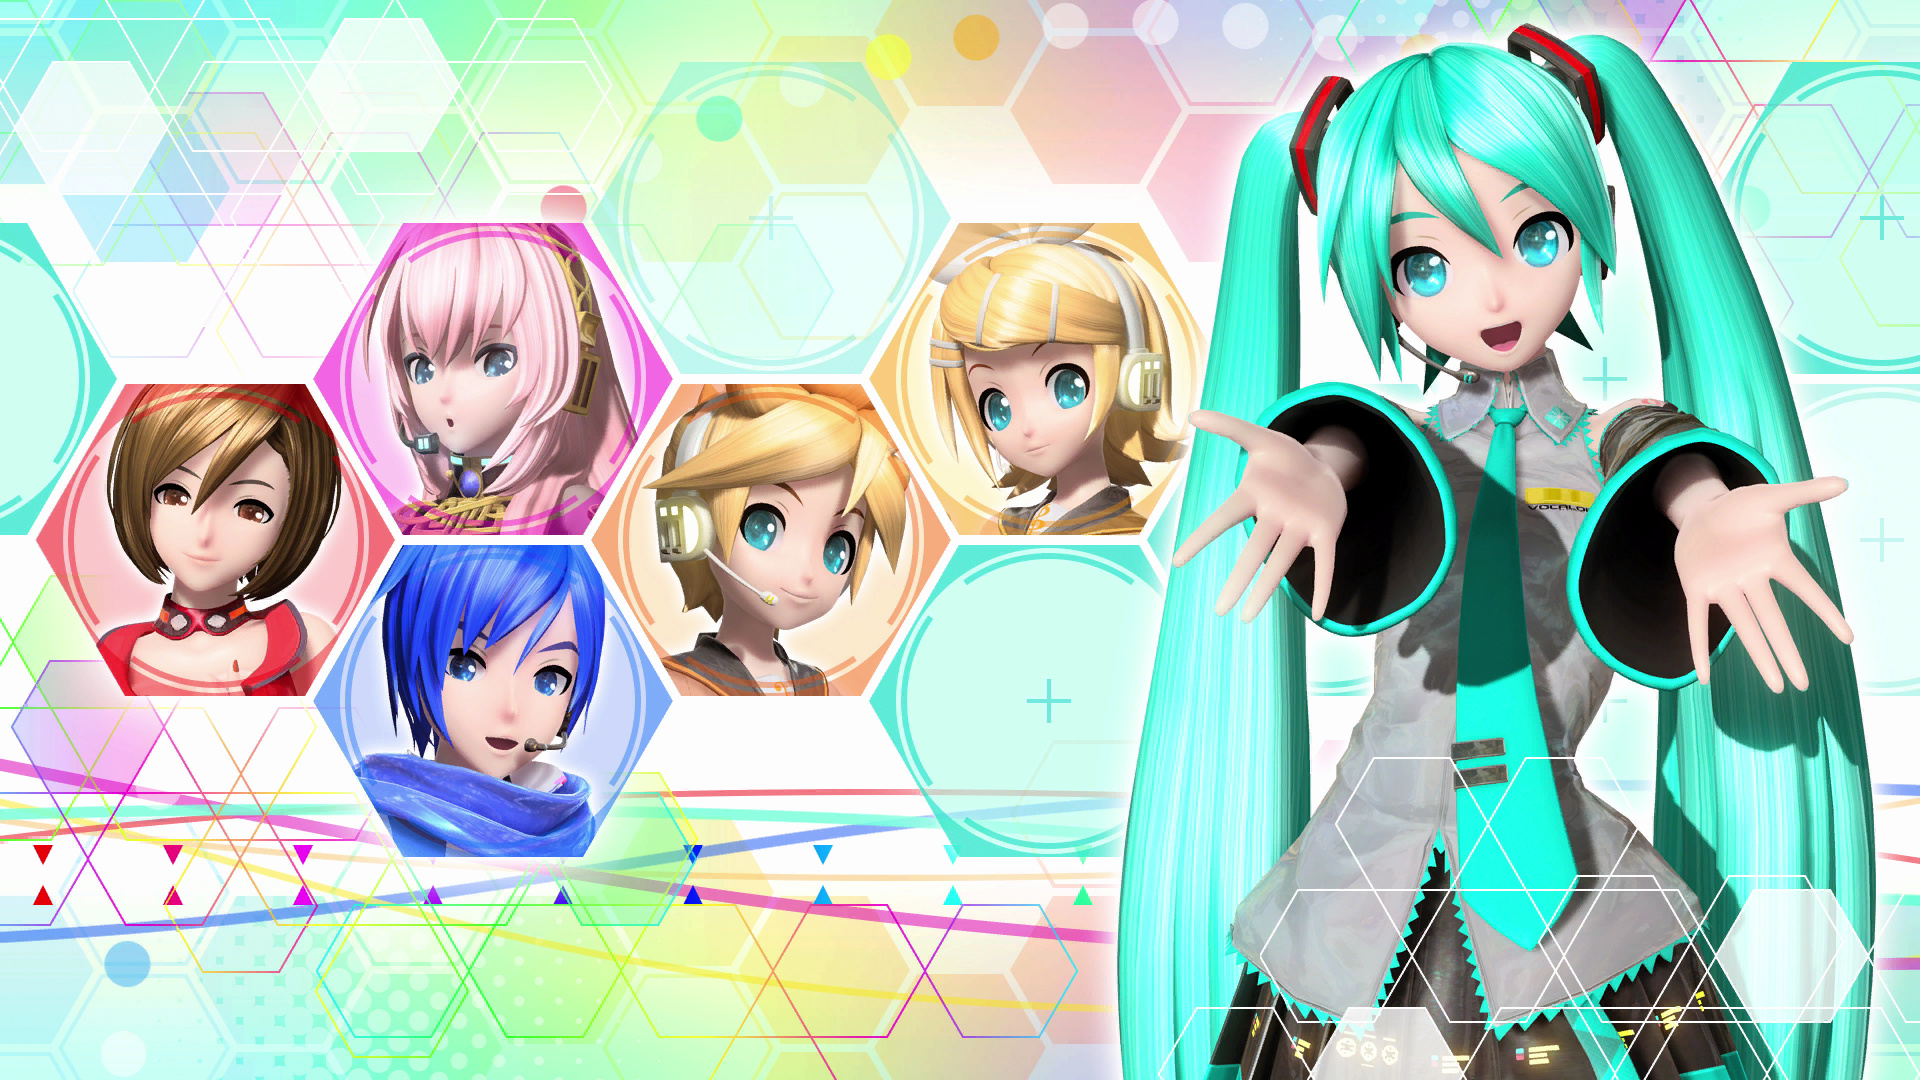 Hatsune miku project diva future tone review playstation 4 segalization - Hatsune miku project diva ...